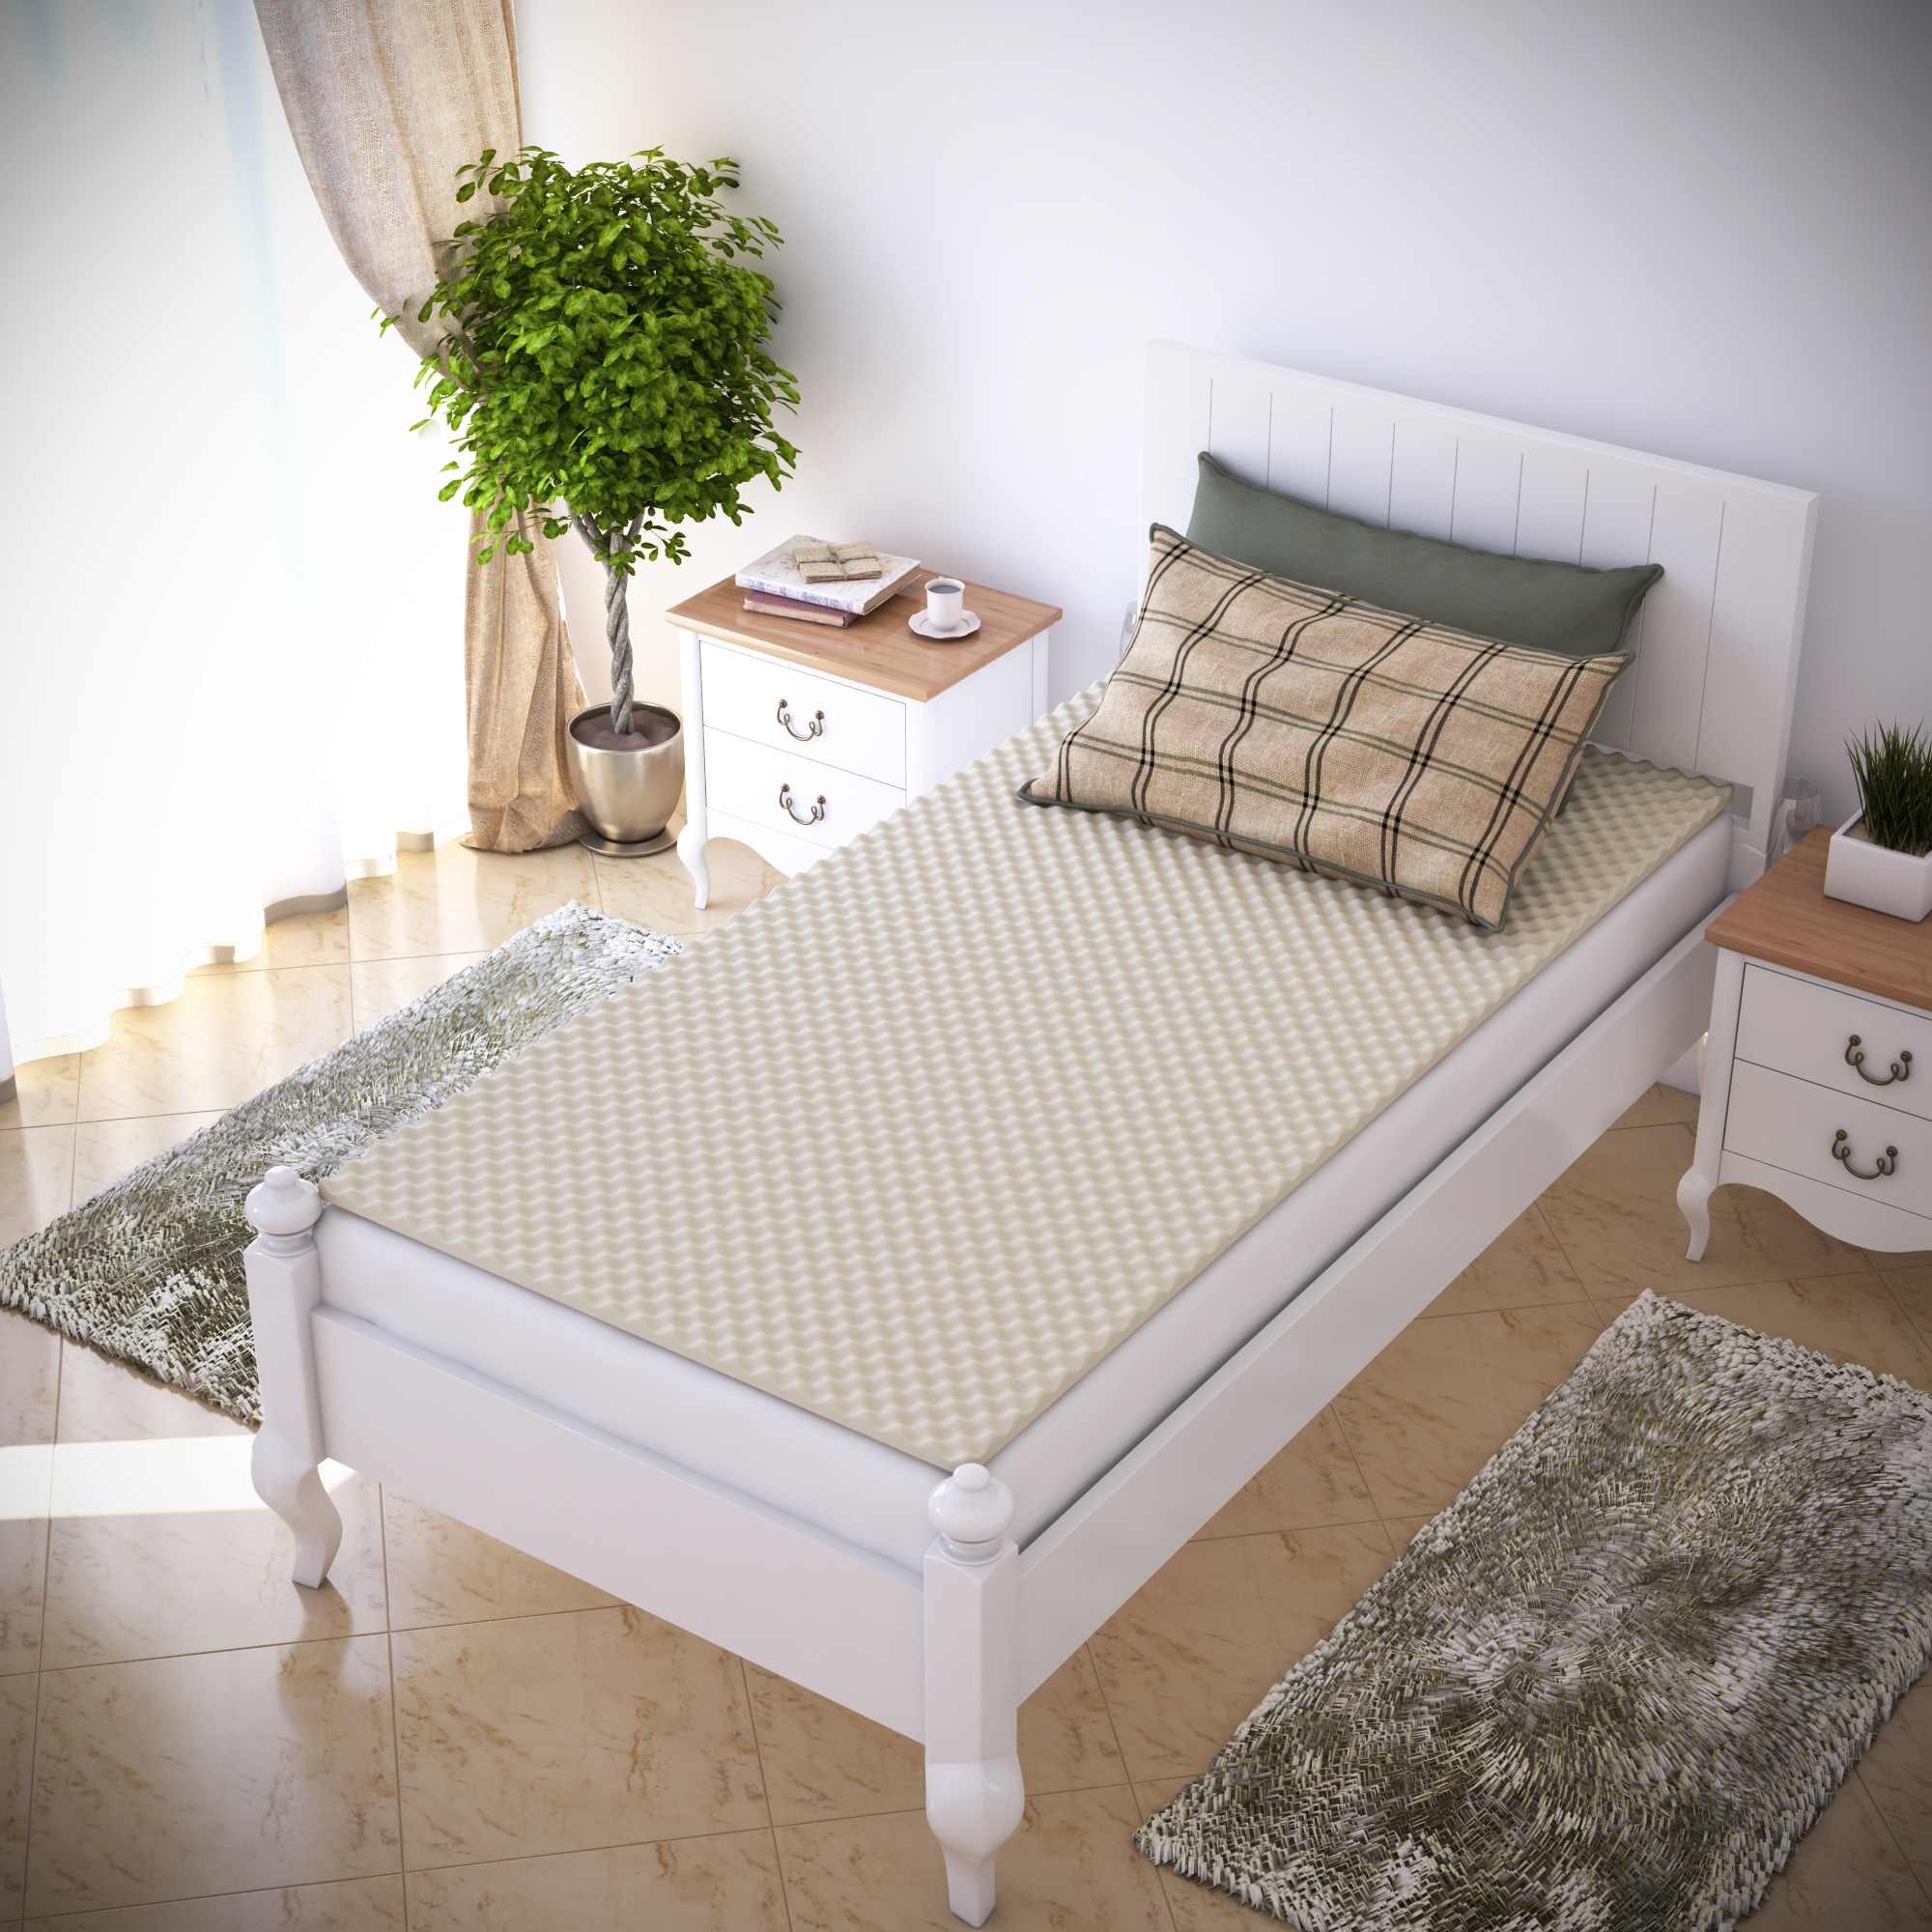 egg crate mattress topper twin and twin xl designed to add extra comfort and support by everyday home walmartcom